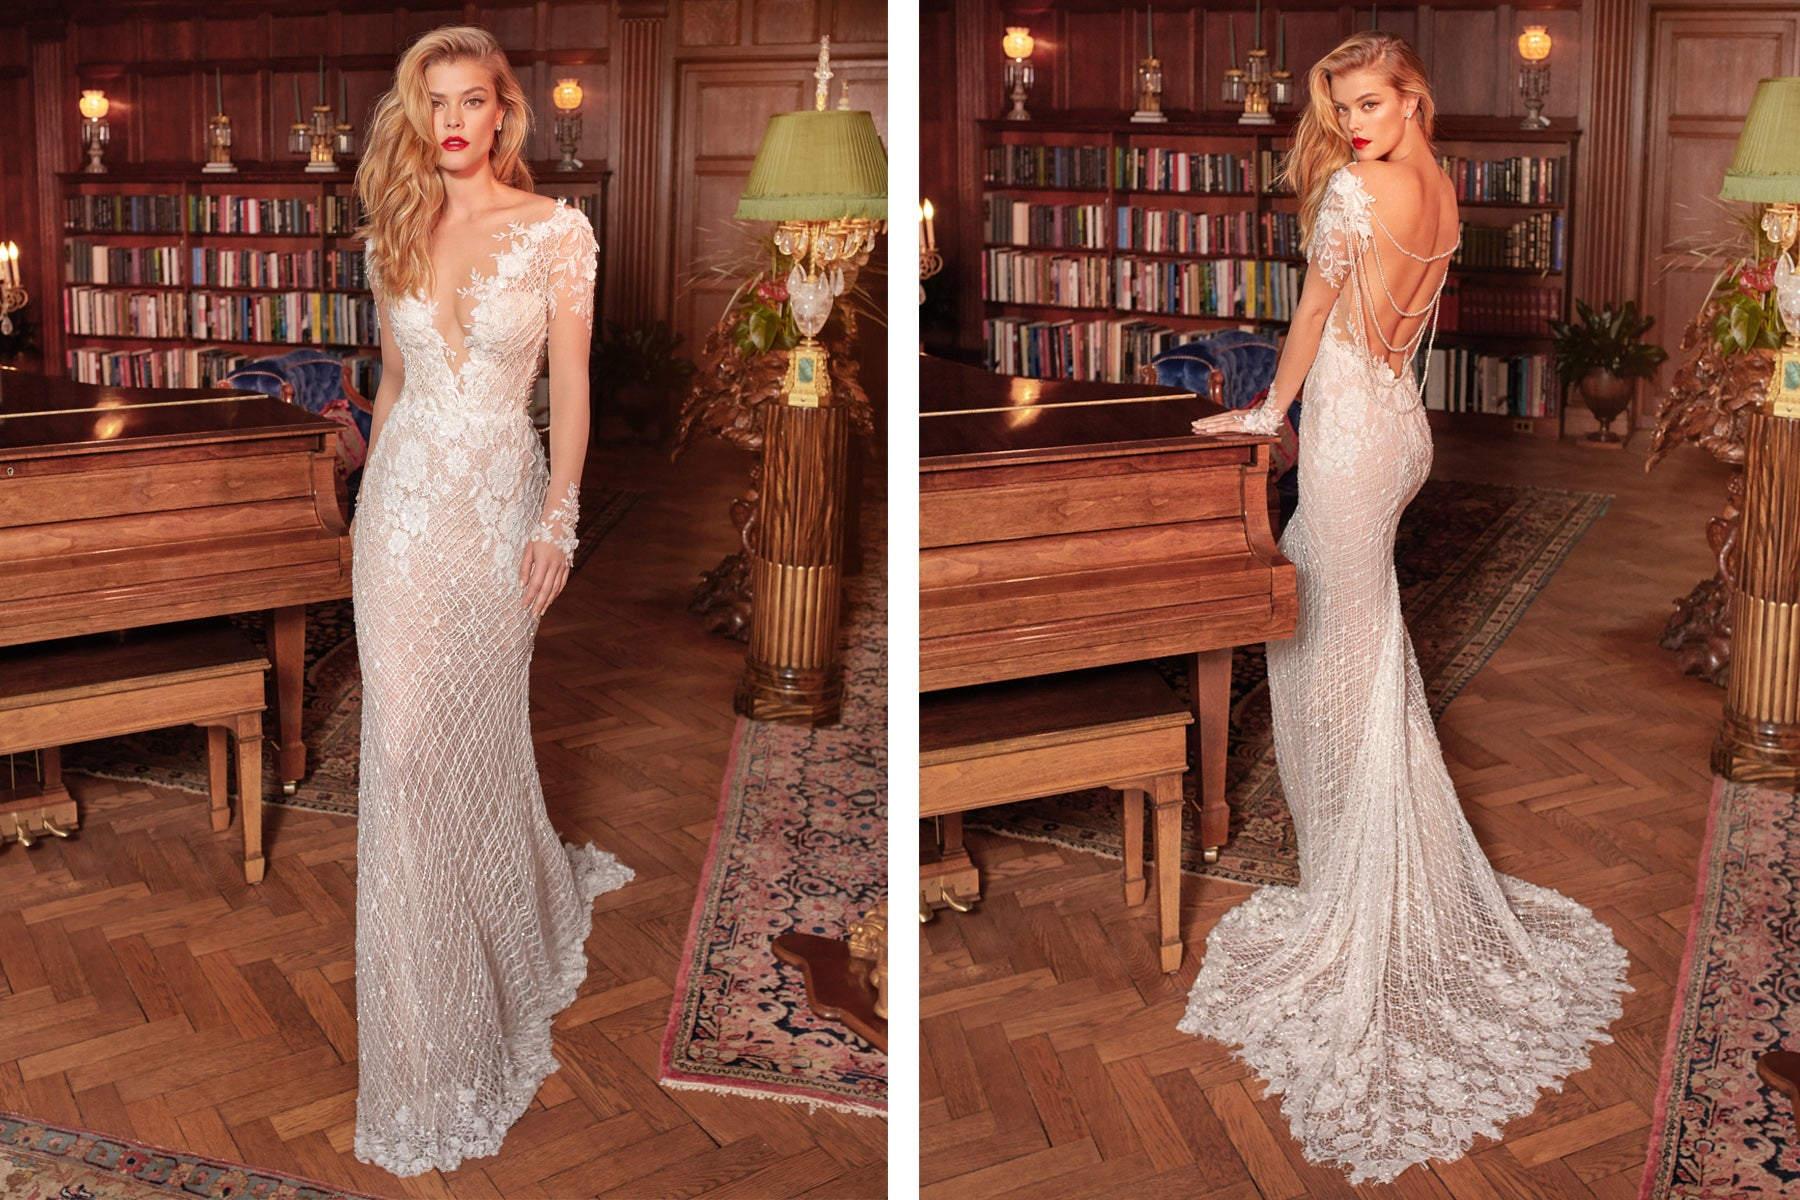 Eternal_Bridal_Wedding_Dress_Galia_Lahav_Haute_Couture_Queen_of_Hearts_Rhiannon